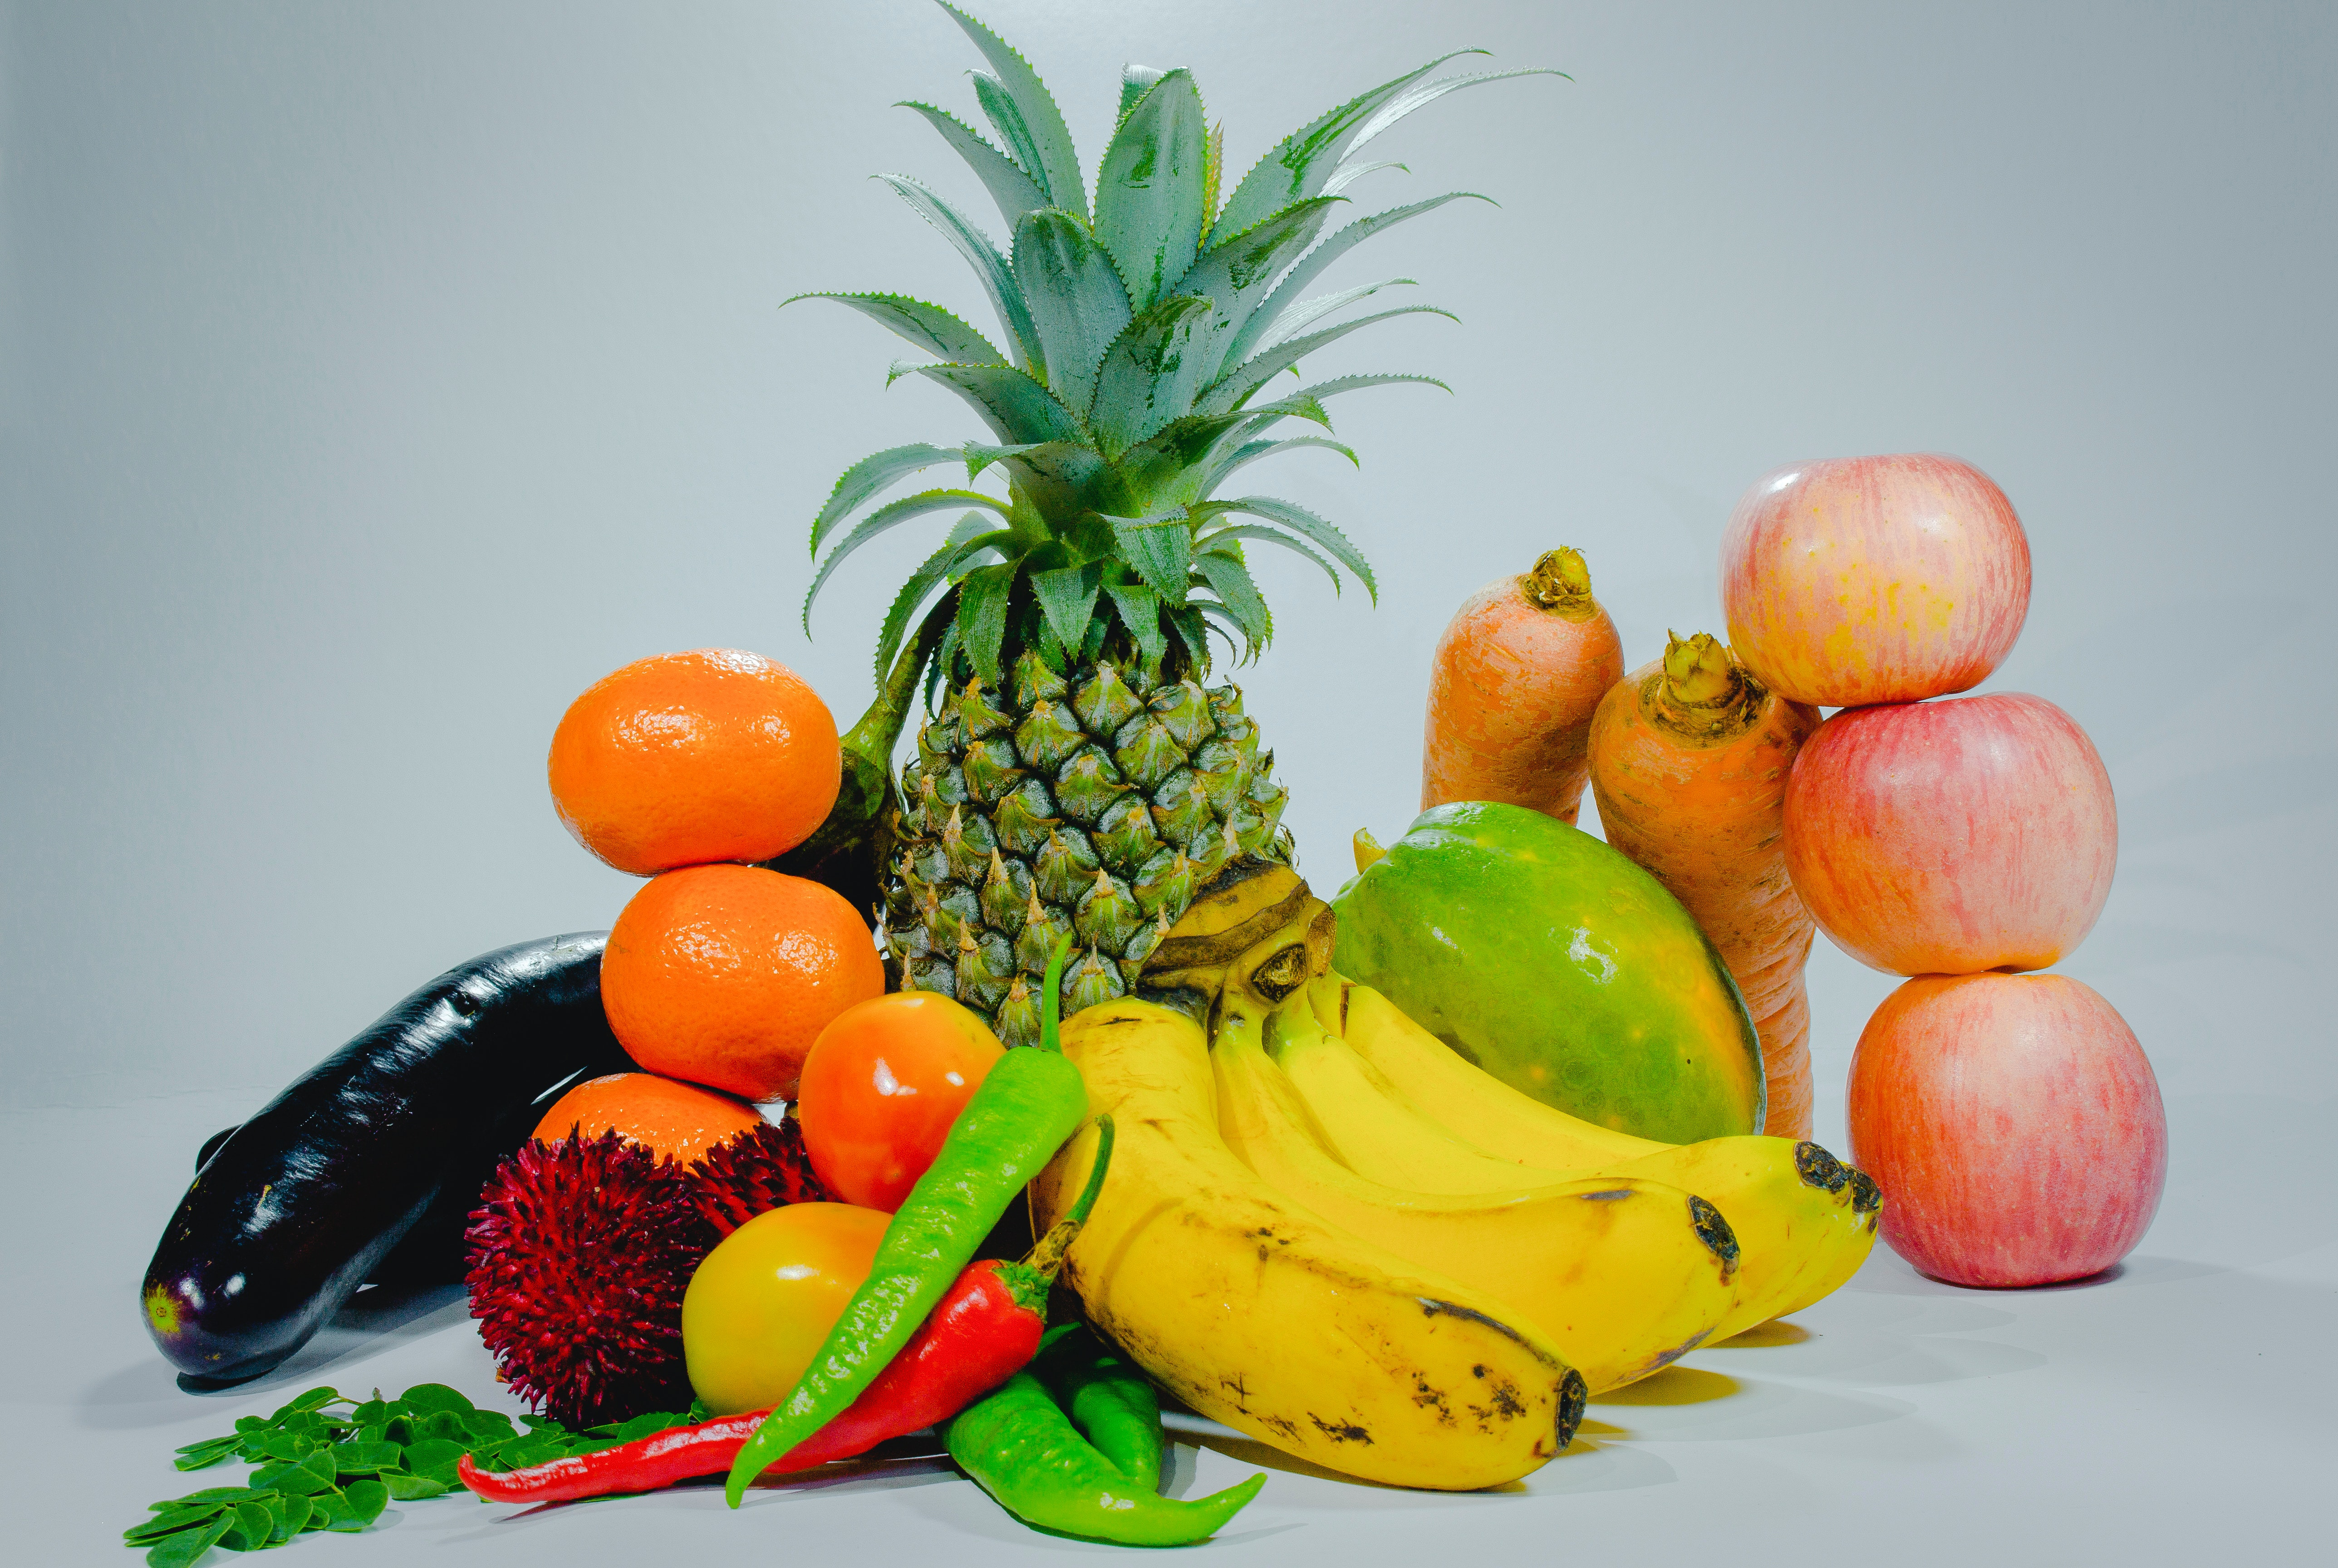 assorted-fruits-3025236